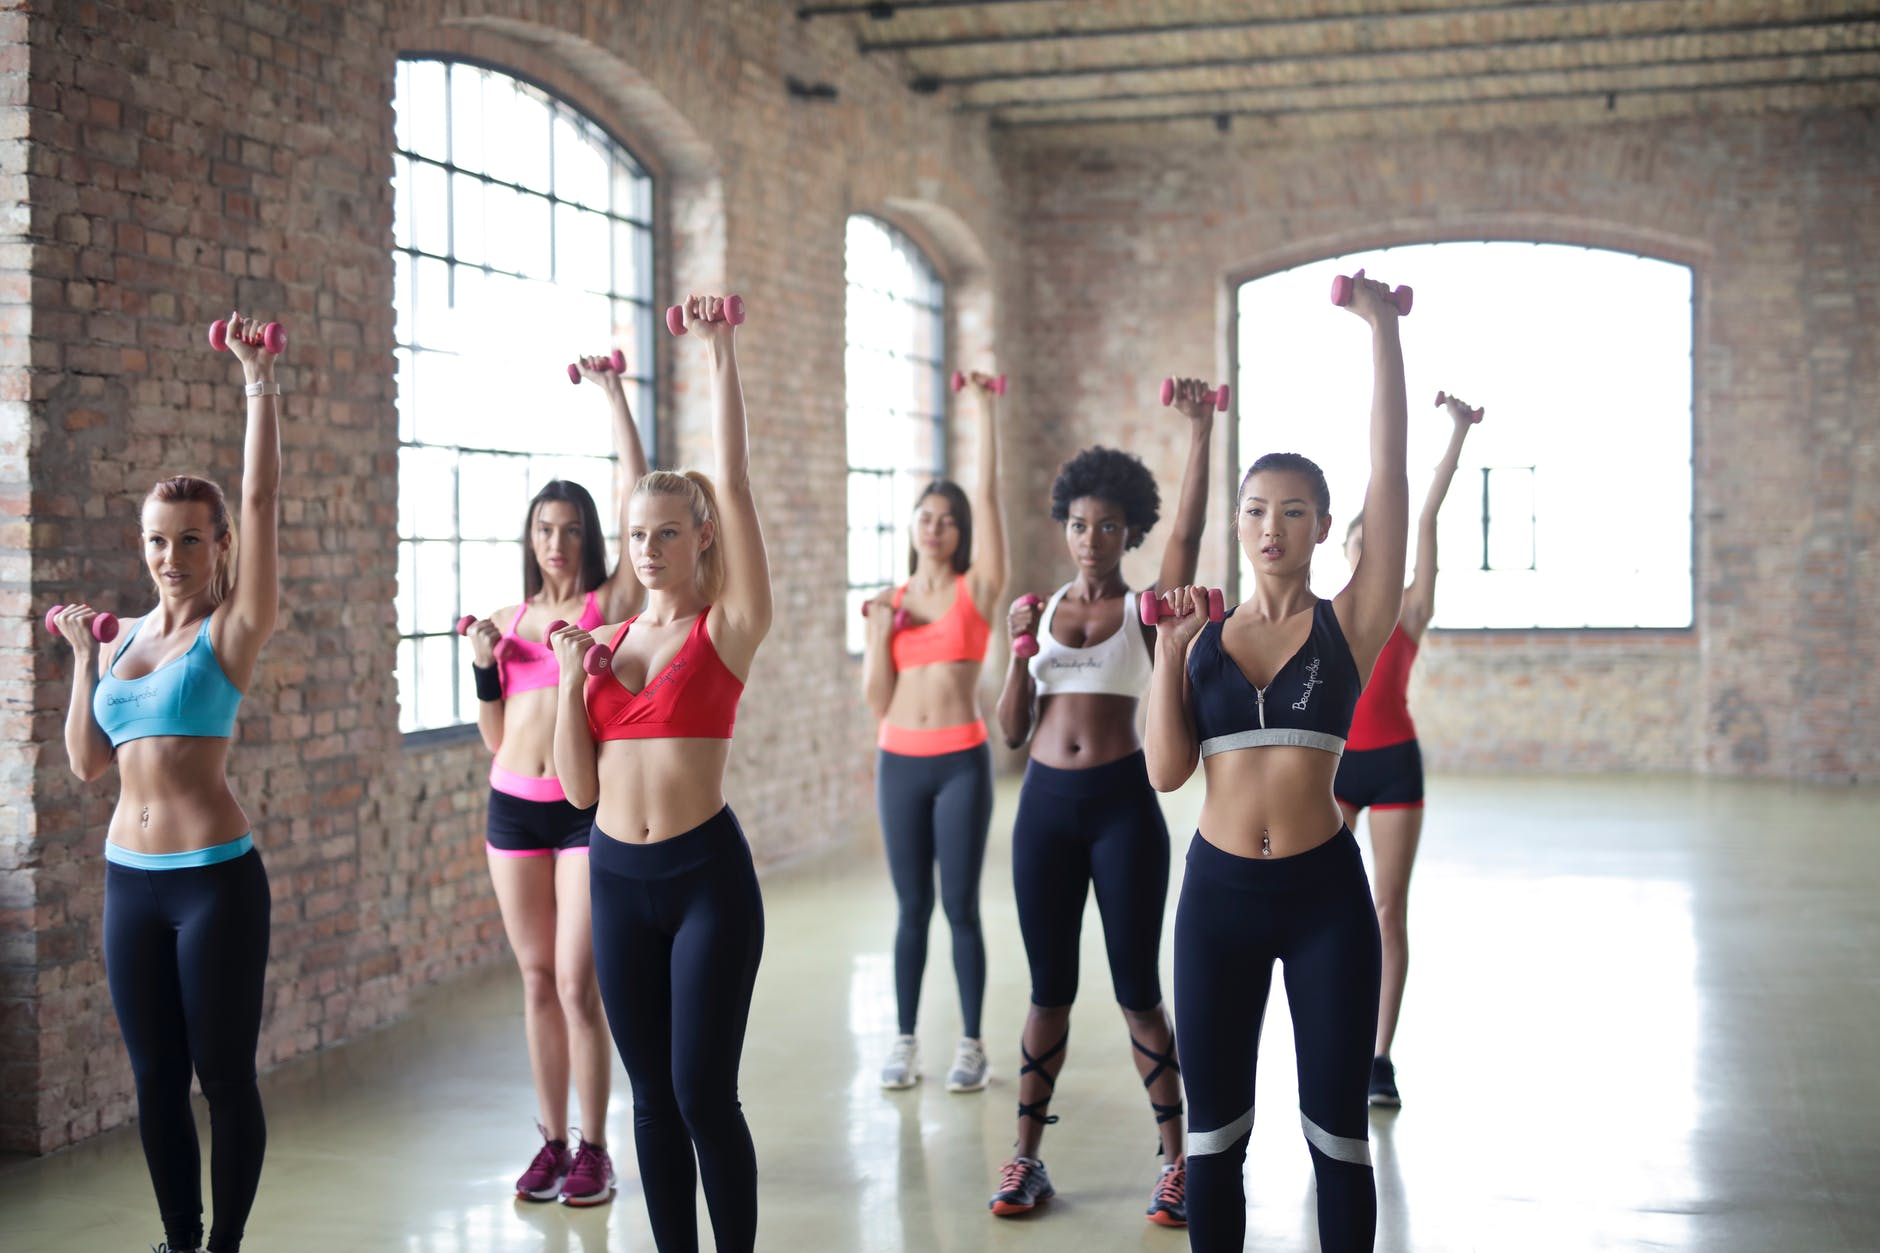 women having exercise using dumbbells